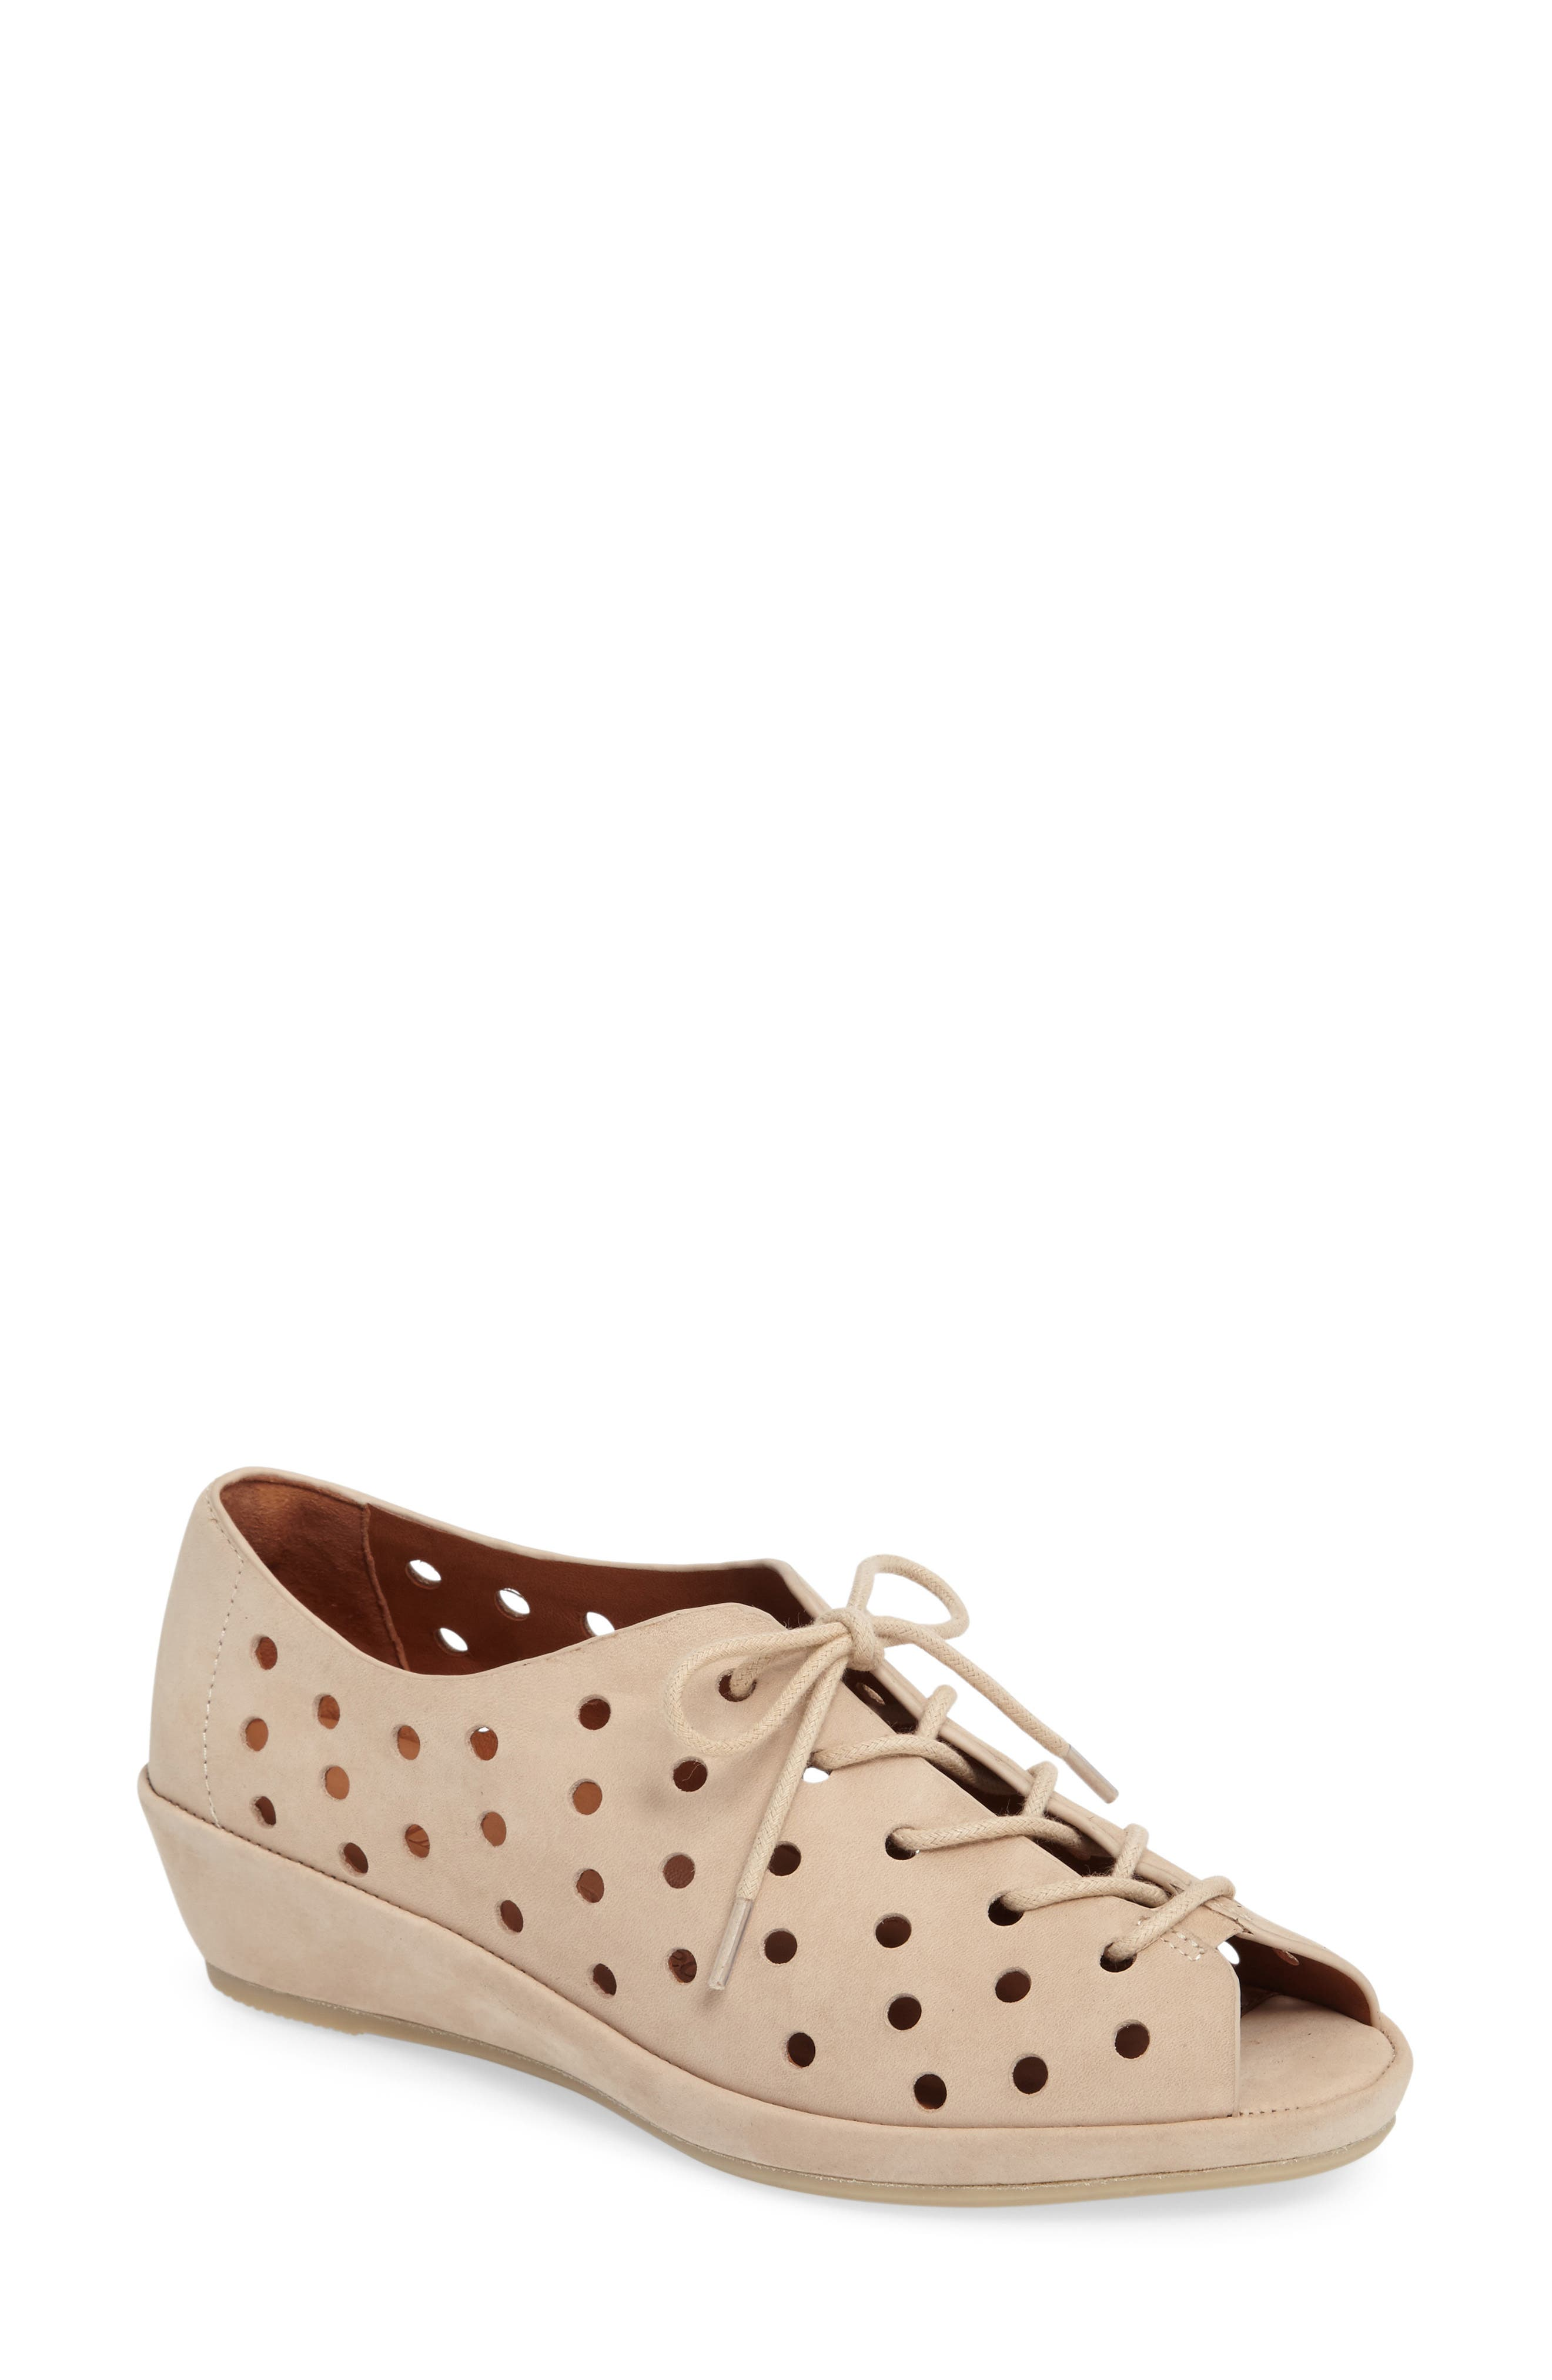 L'Amour des Pieds Boccoo Perforated Lace-Up Oxford (Women)